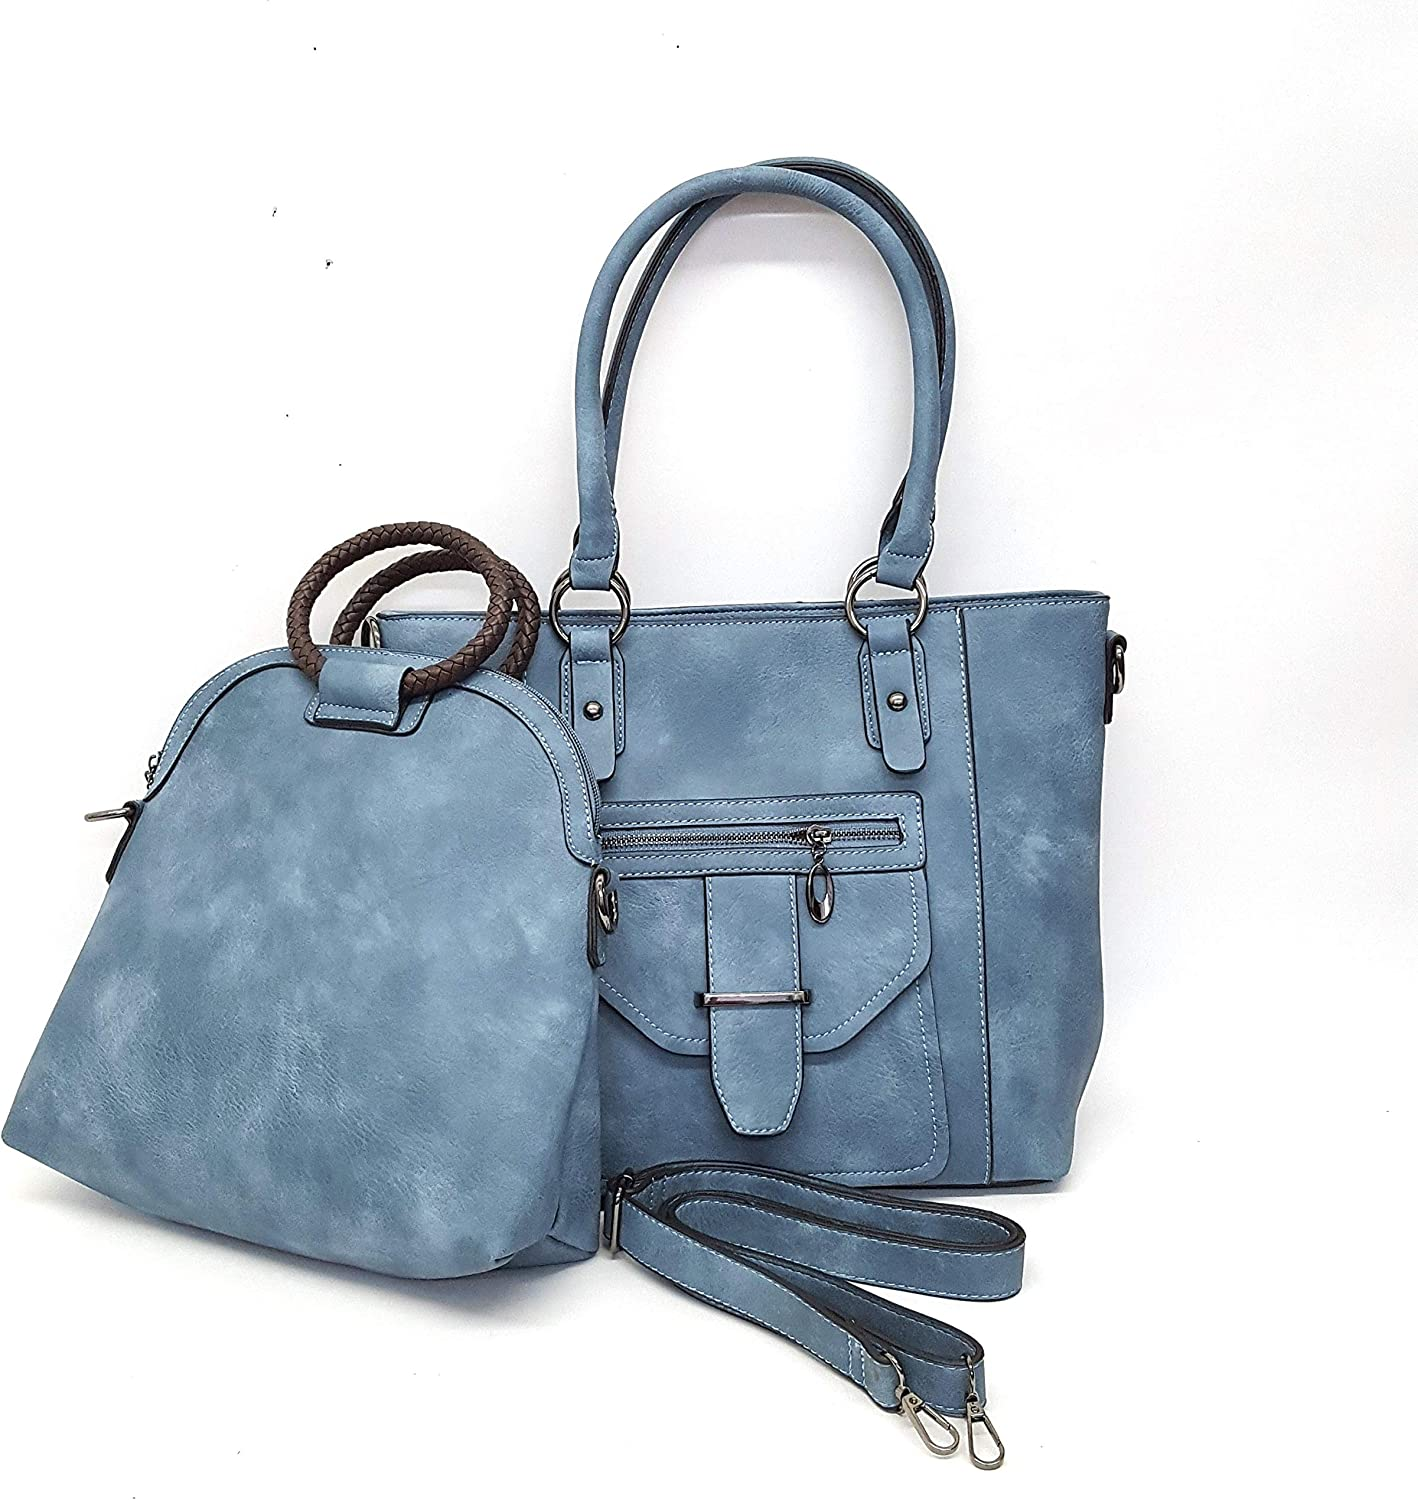 2 Piece Tote Set Denim